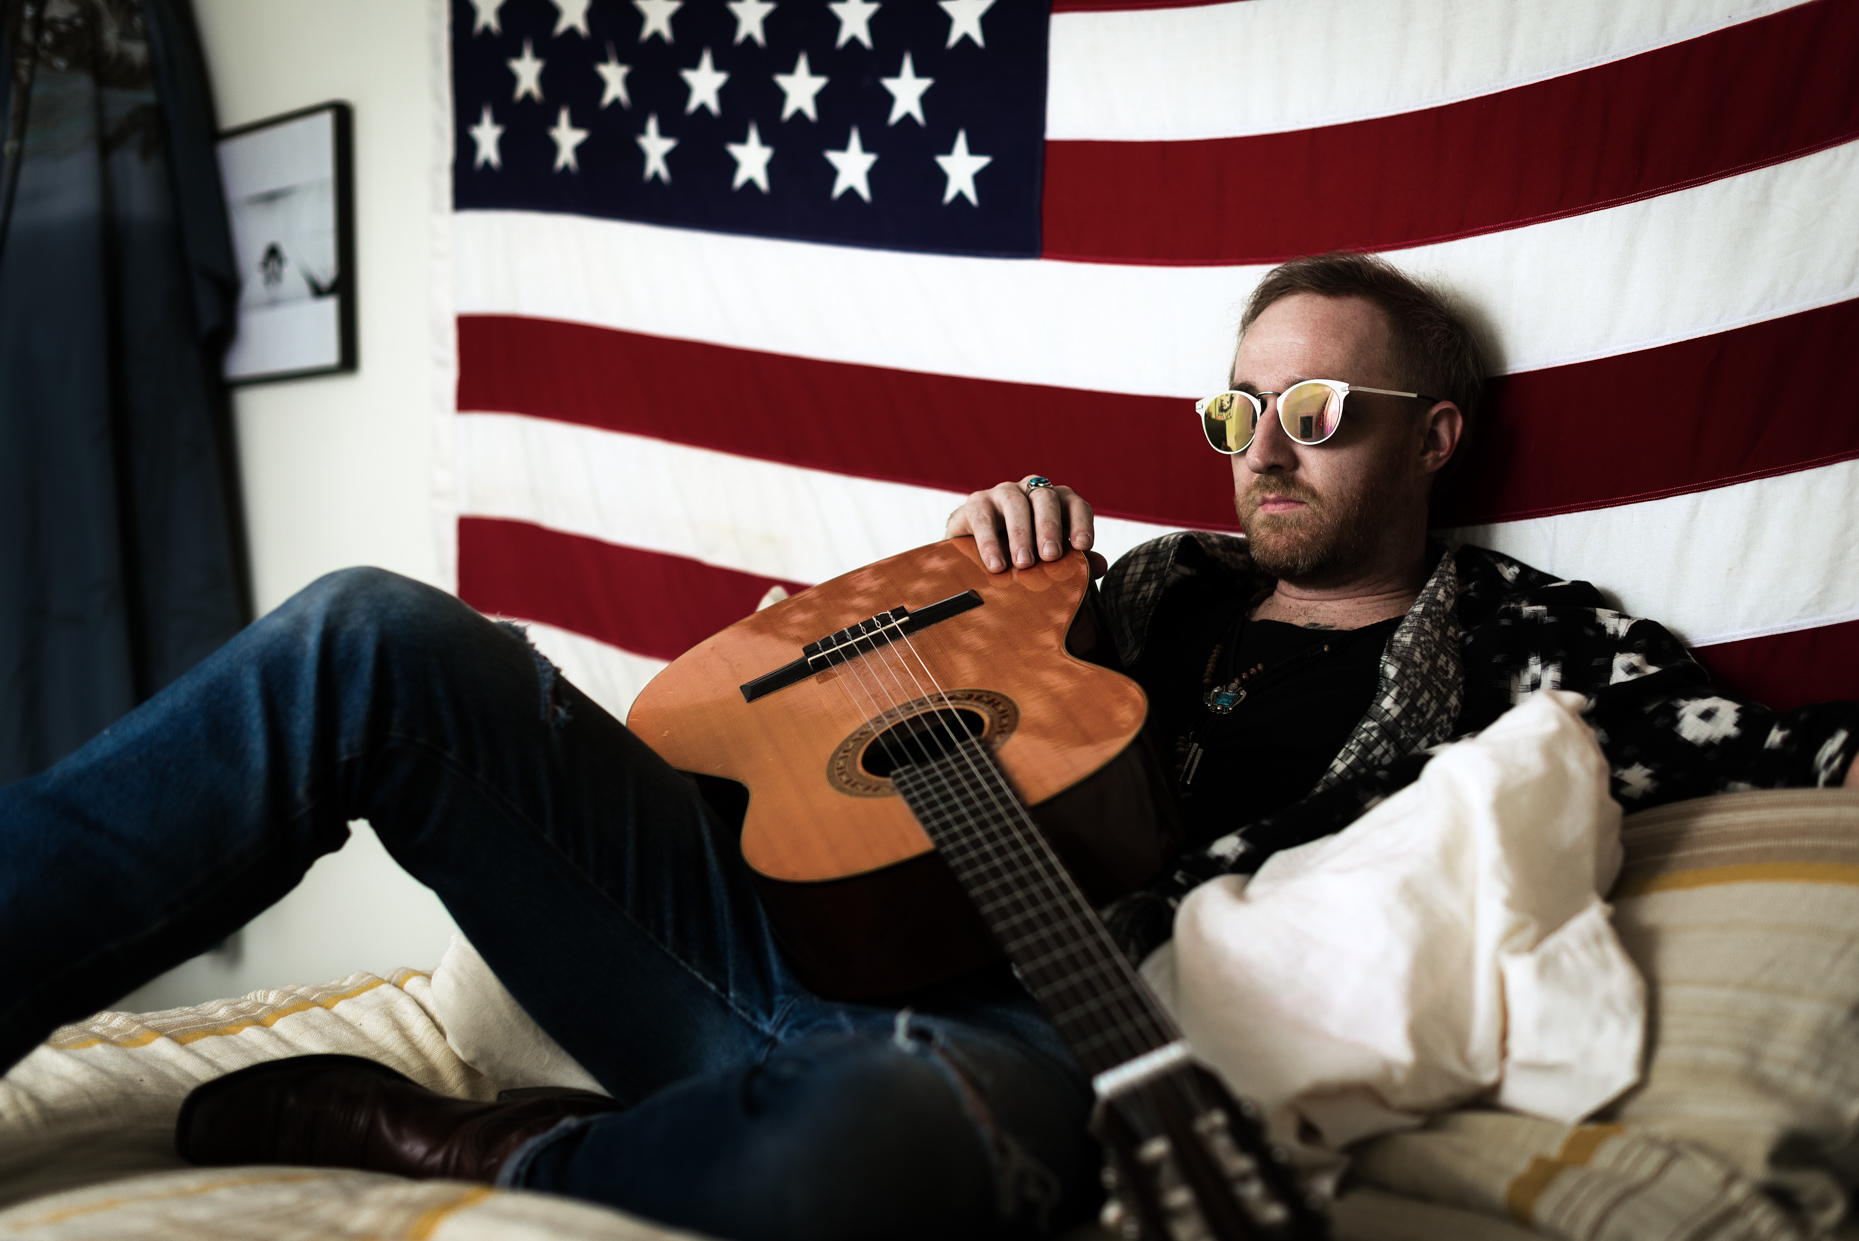 Austin-Commercial-Editorial-Photographer-Jonathan-Terrell-American-Flag-Acoustic-Guitar